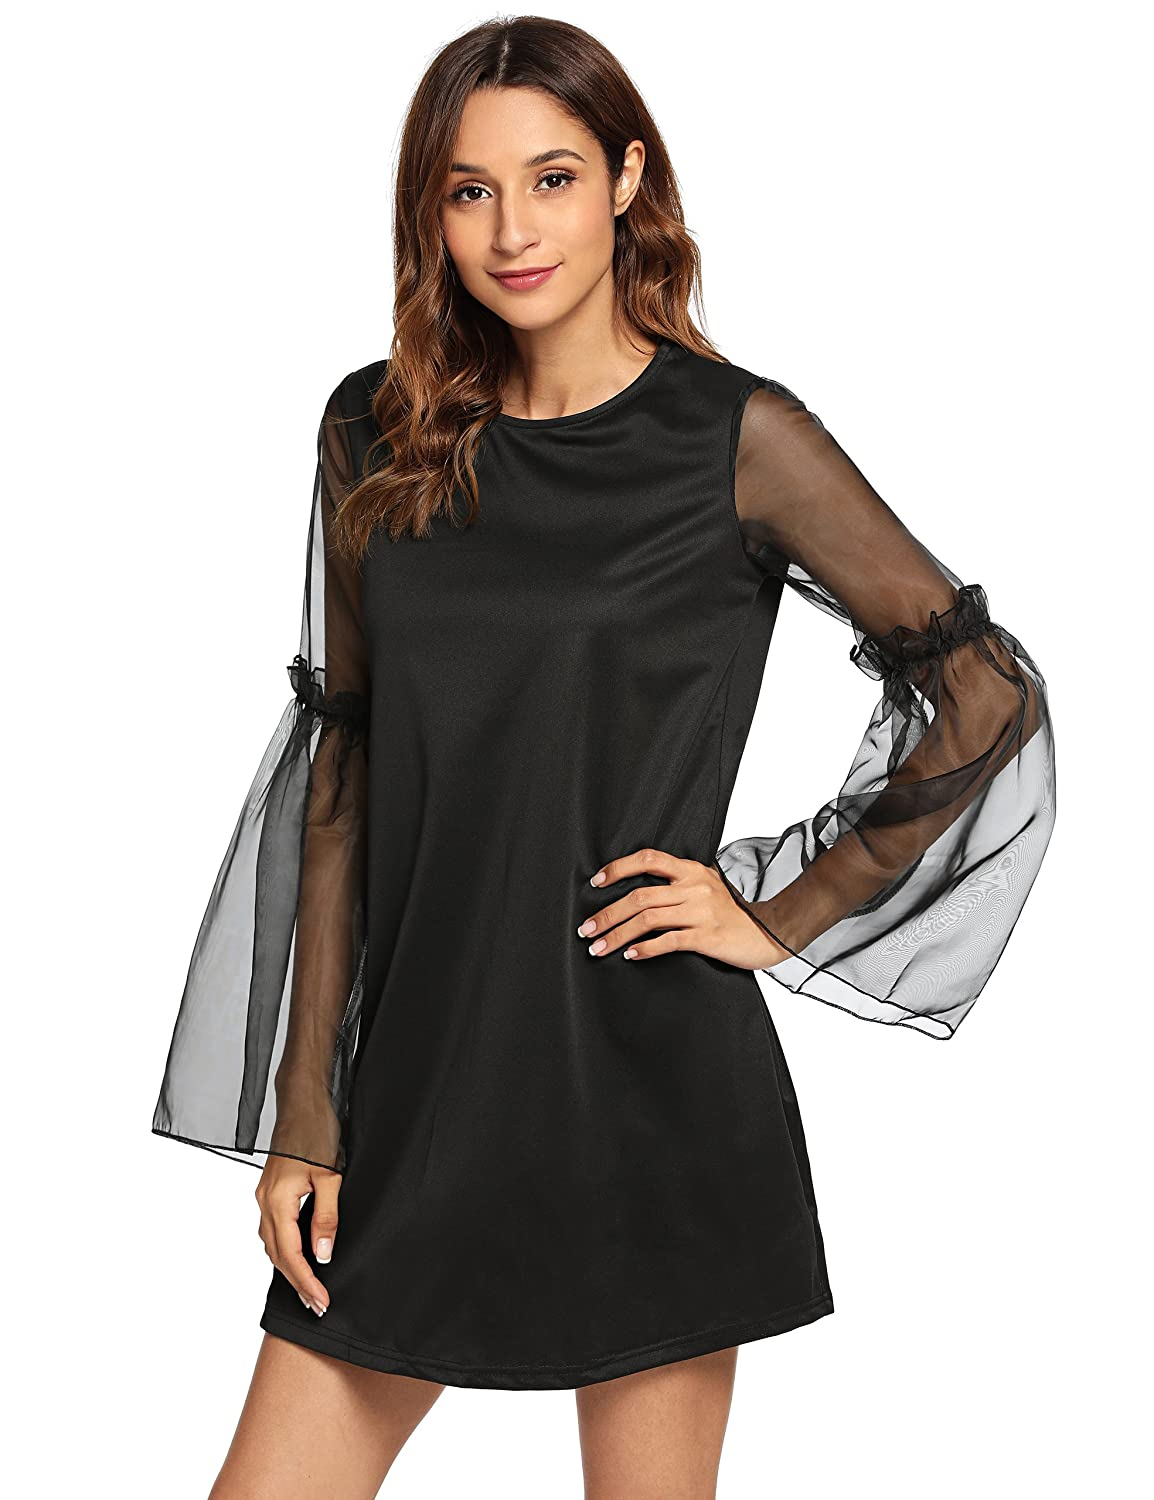 Black3 Verdusa Women's Pearl Beaded Tie Neck Mesh Bishop Sleeve Dress